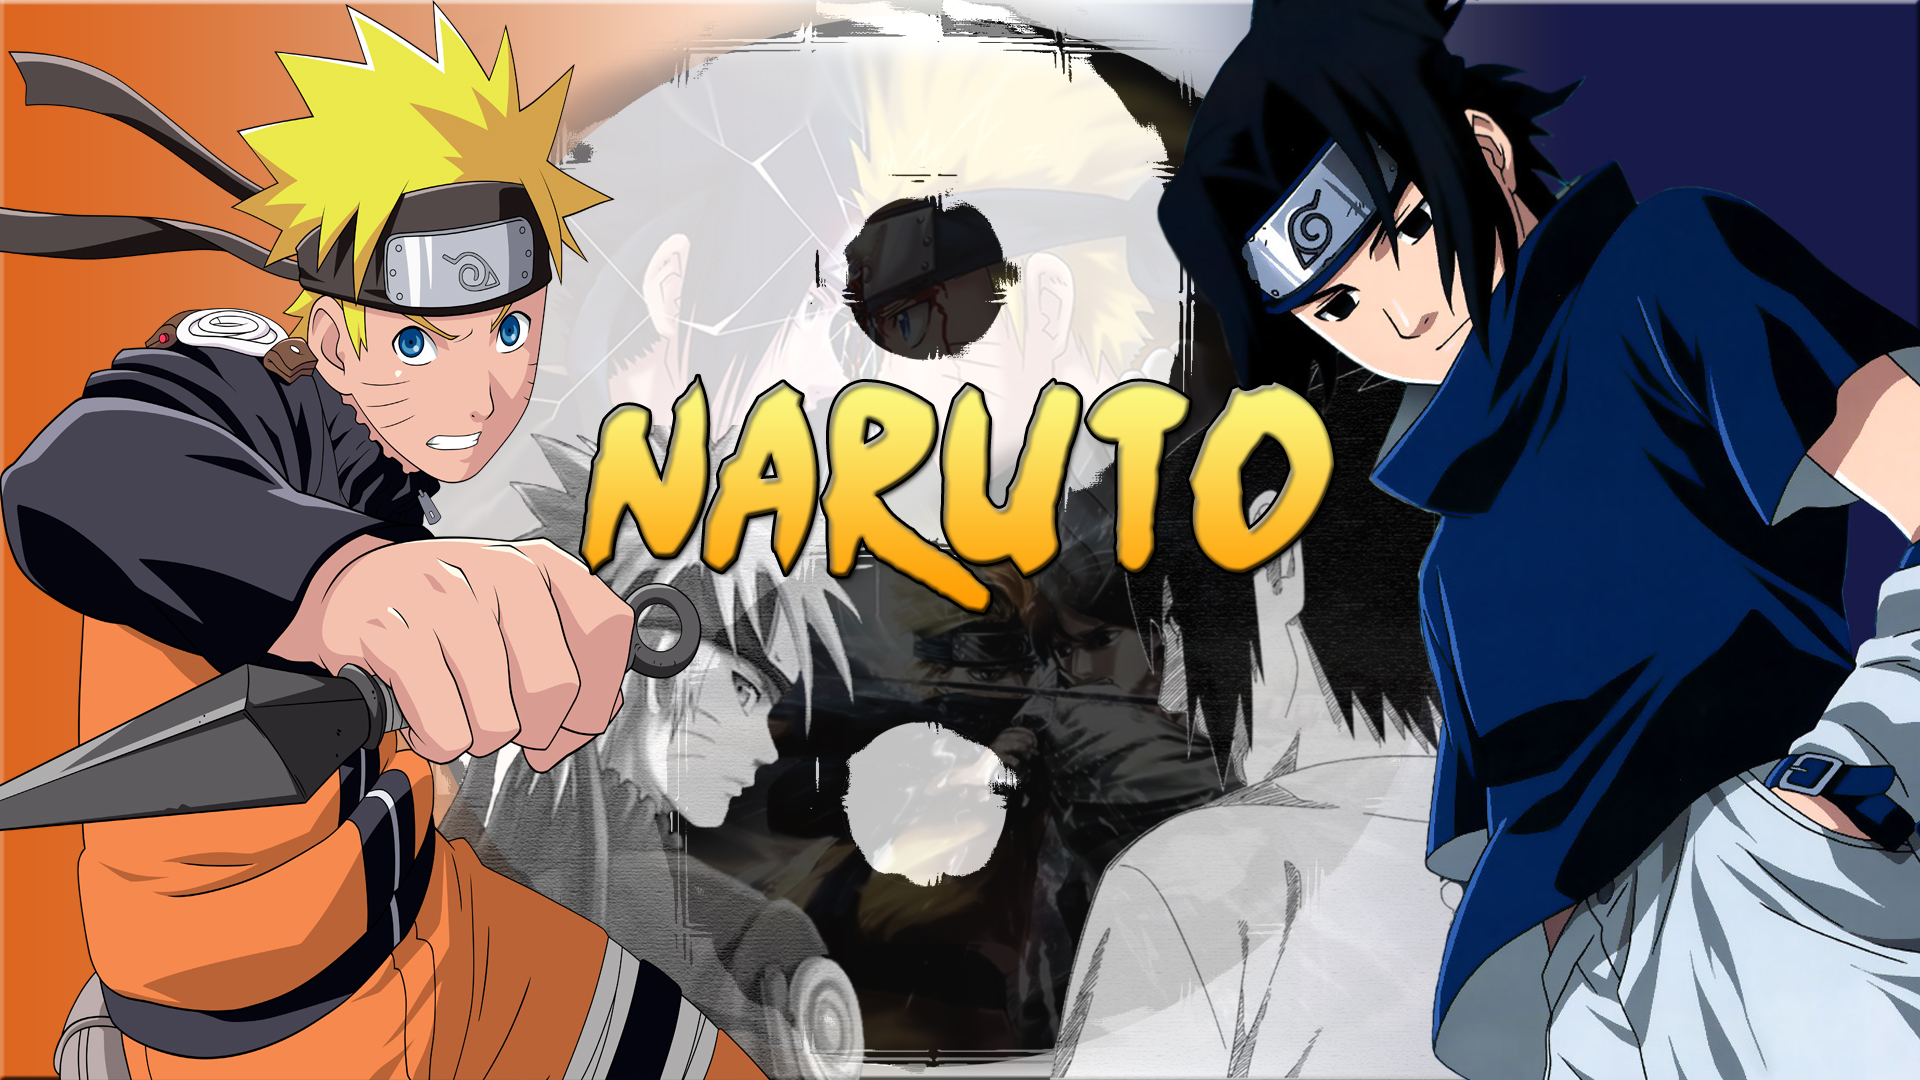 awesome anime club images naruto hd wallpaper and background photos  30015129